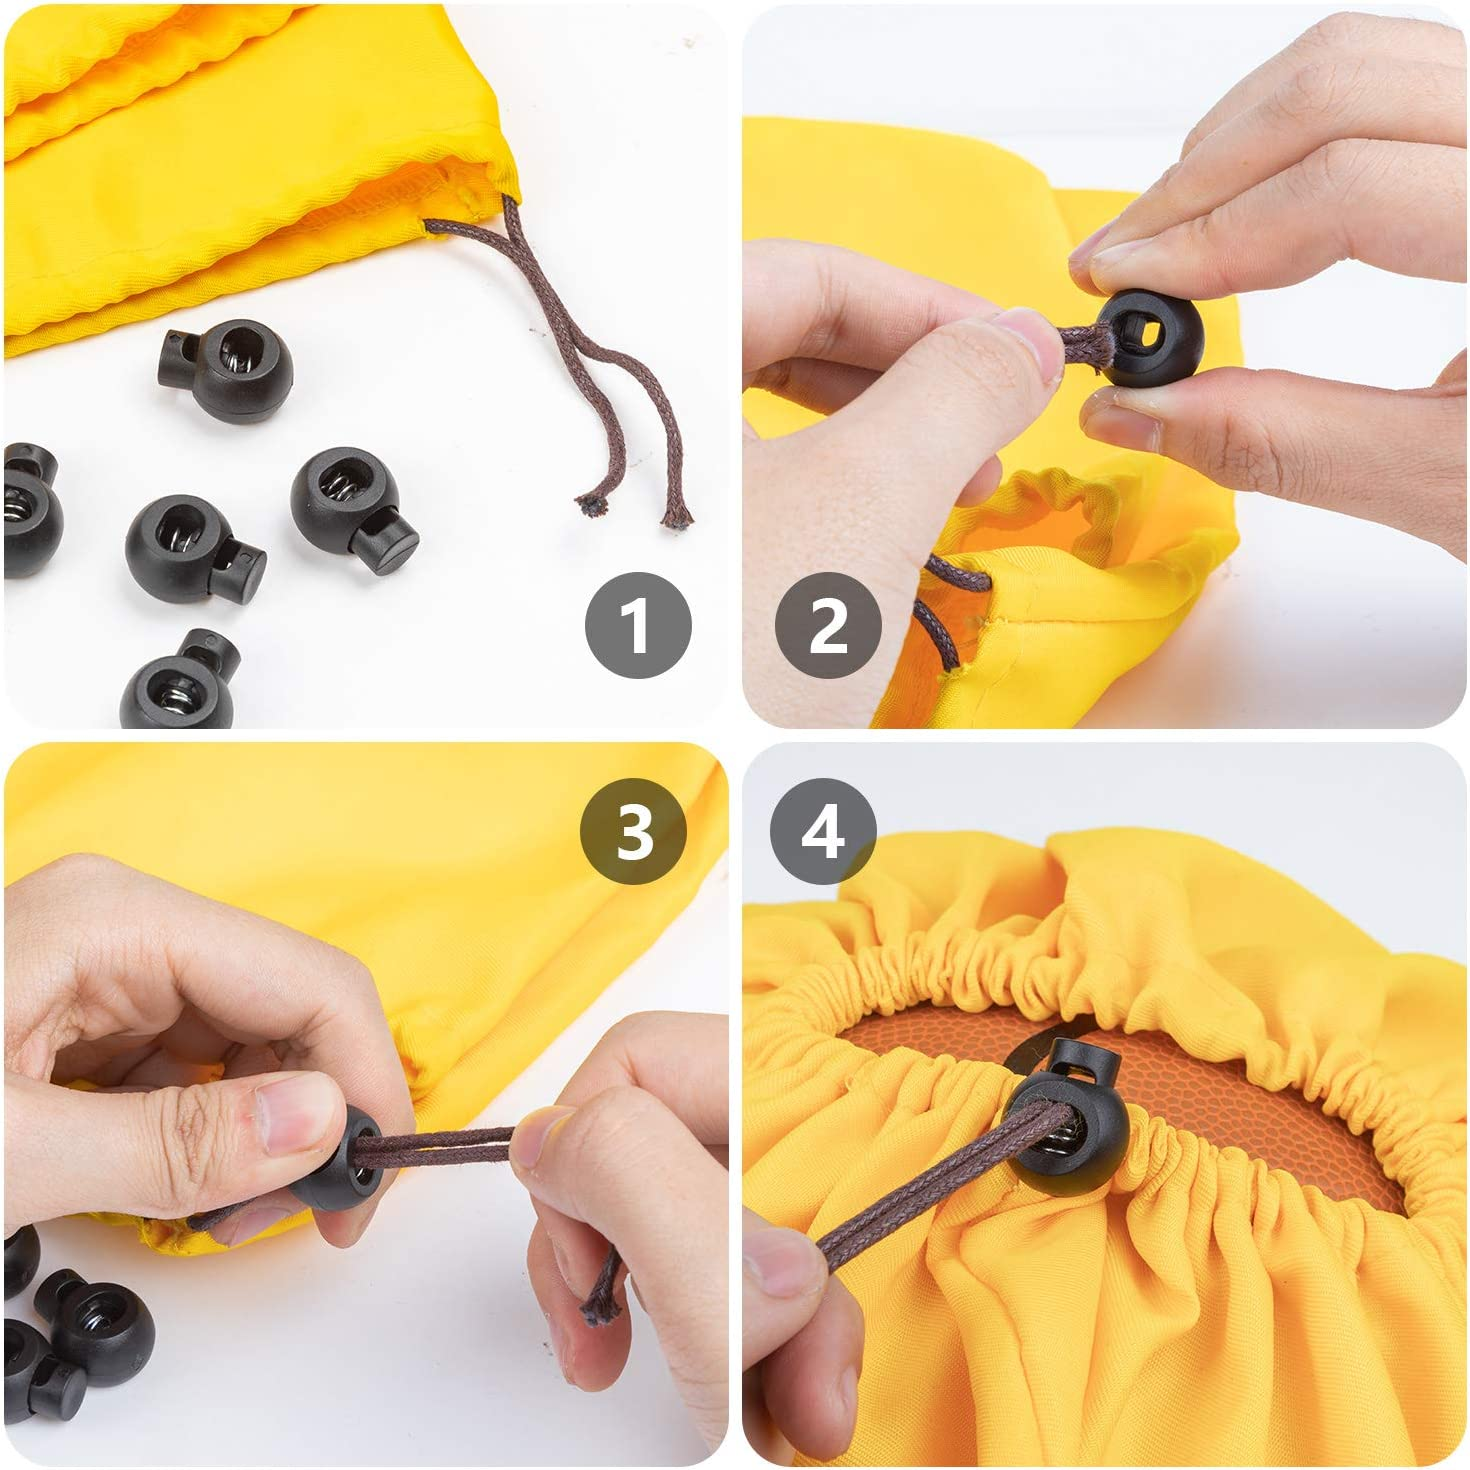 160 Pieces FFNIU Plastic Cord Lock Single Hole Spring Toggle Stopper Cord Rope End for Drawstrings and Paracord 10 Colors